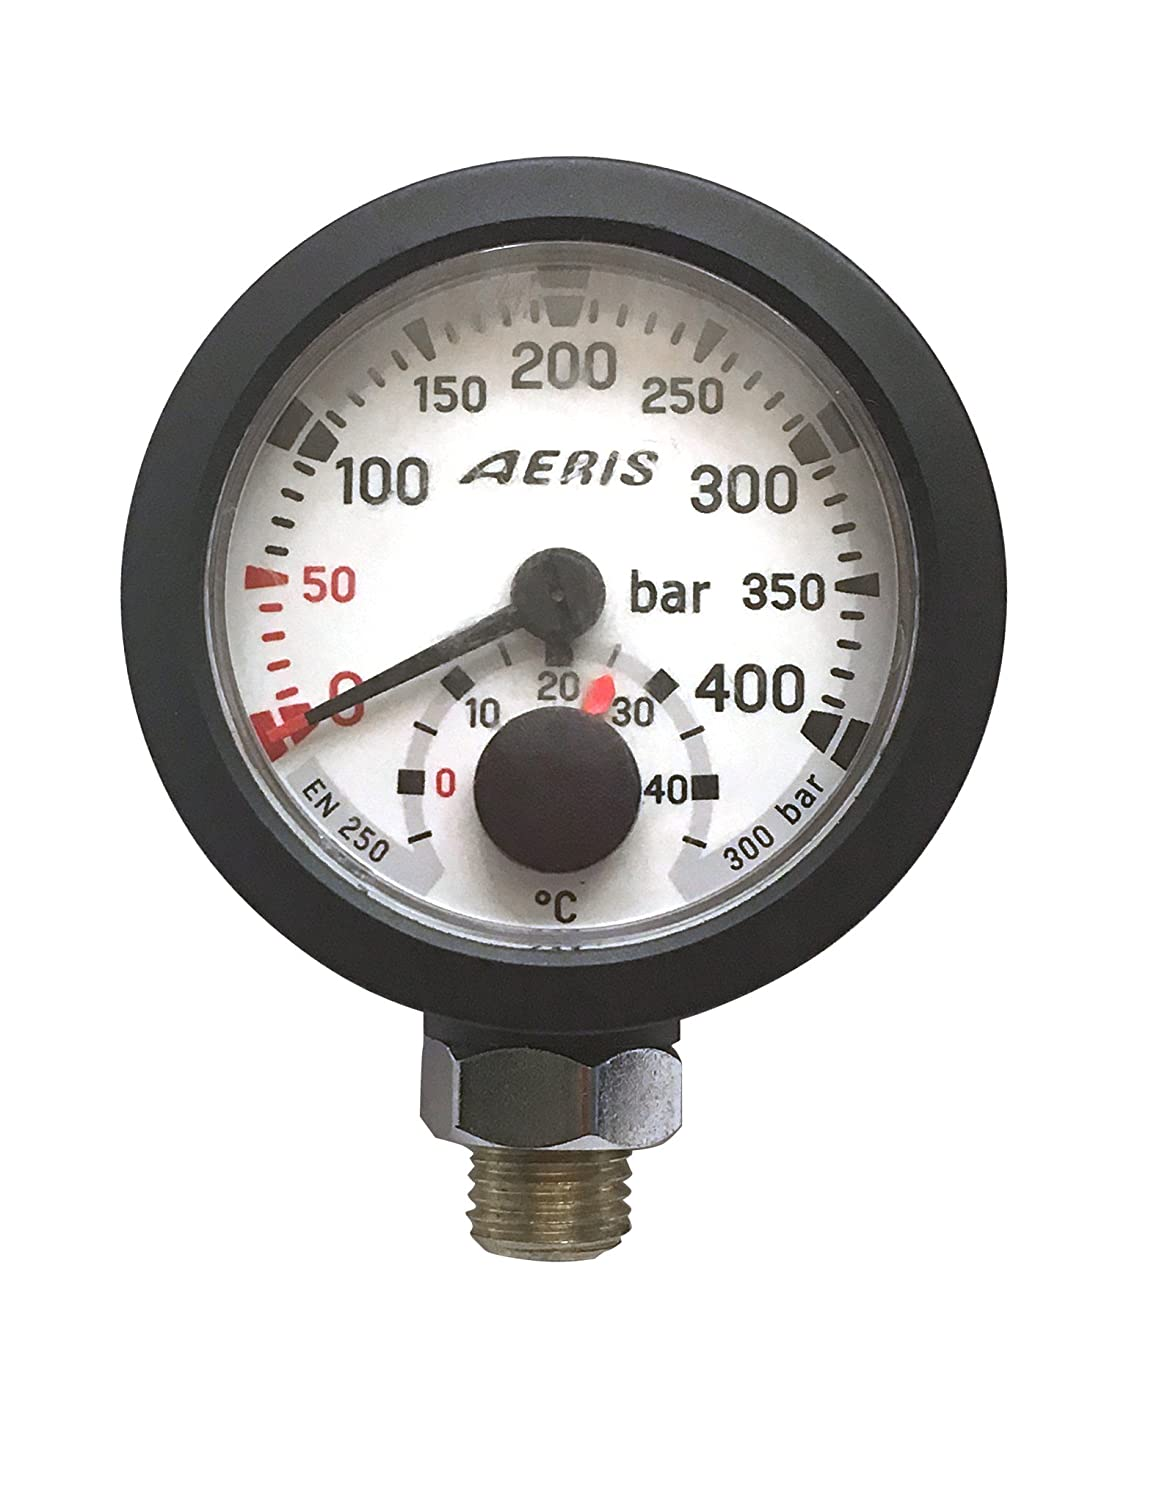 Aeris Metric Standard Submersible Pressure Gauge Module w/ Temperature for Scuba Diving